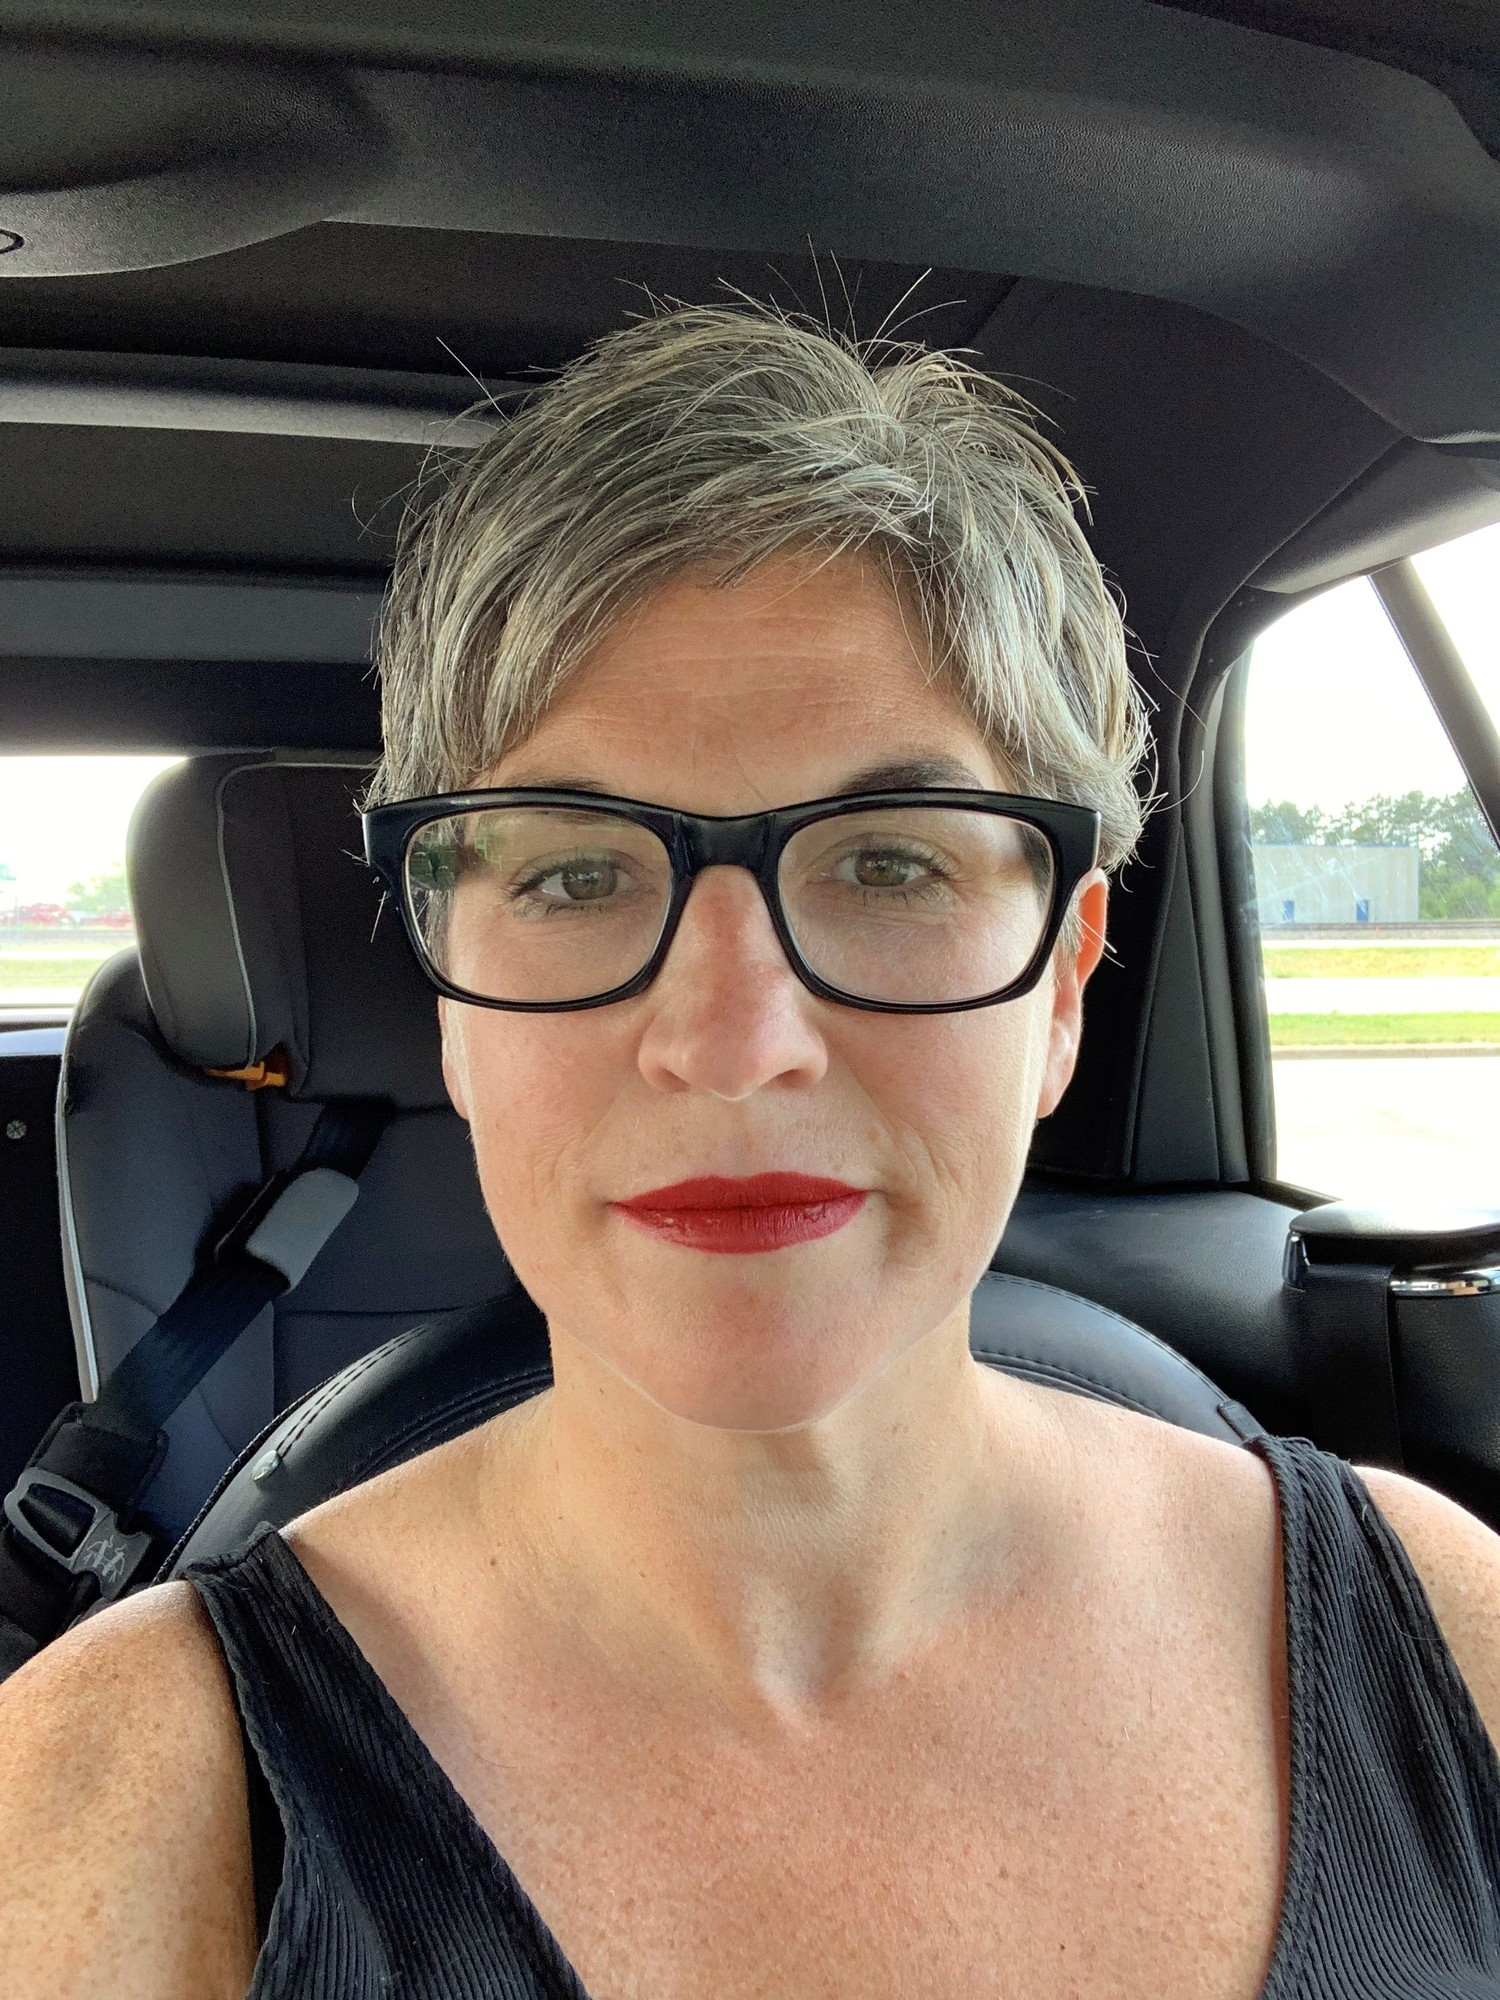 Jamie Hurewitz stopped dying her hair during COVID and hopes to continue wearing her natural gray.